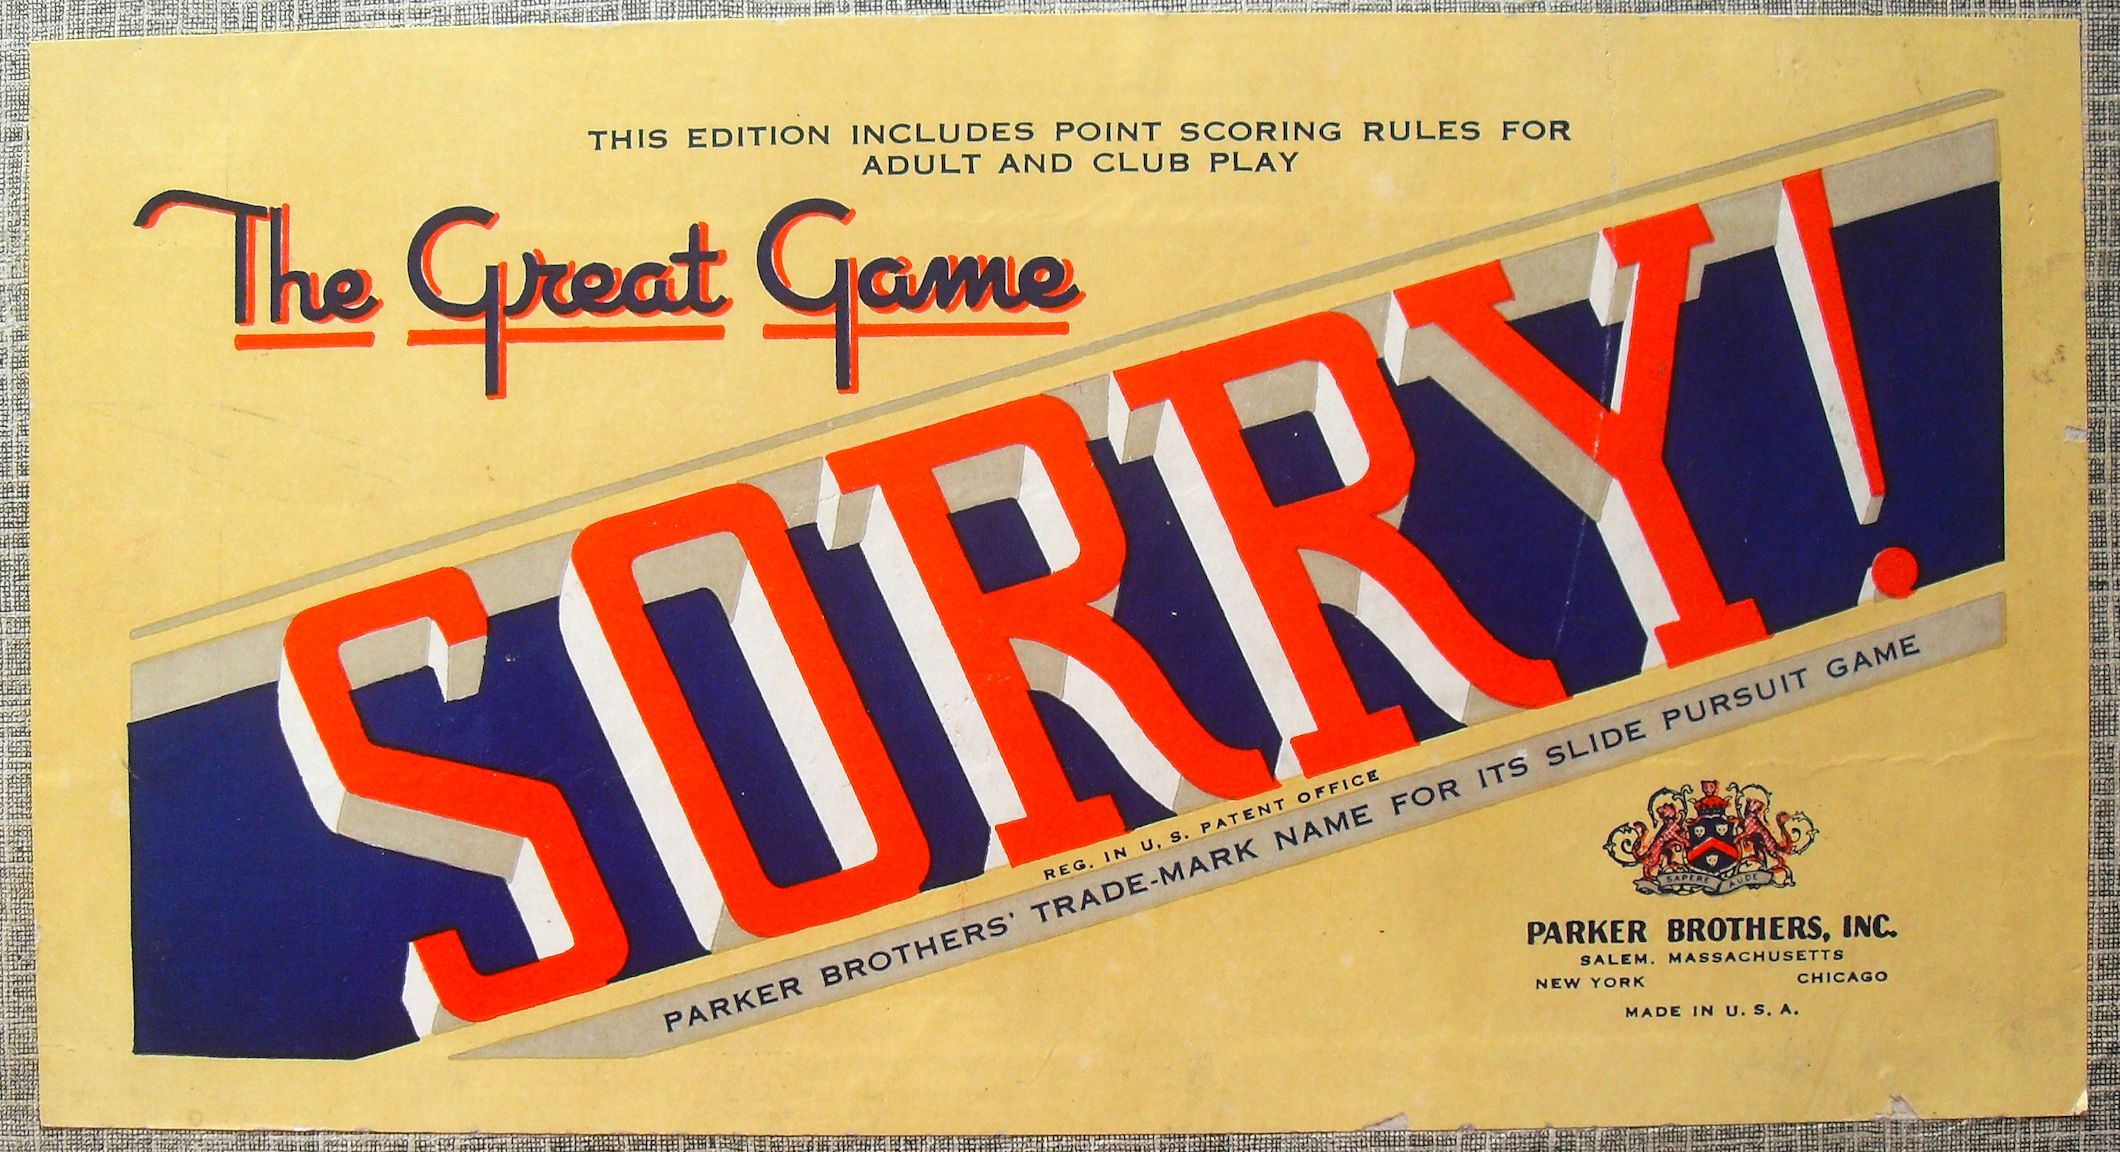 Parker Brothers 1950 Sorry The Great Game Just My Type Vintage